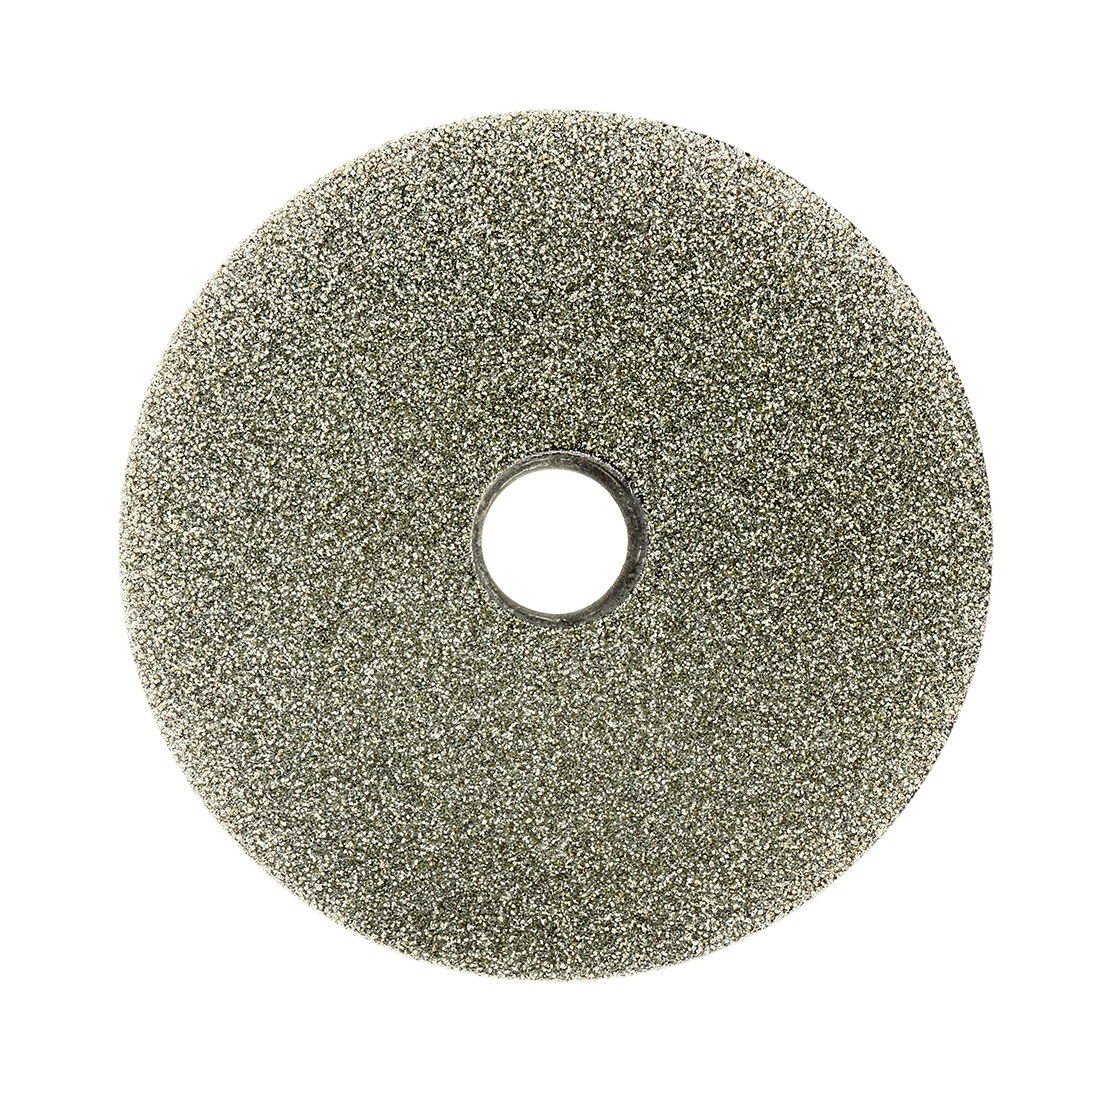 100mm 4-inch Grit 100 Diamond Coated Flat Lap Disk Wheel Grinding Sanding Disc